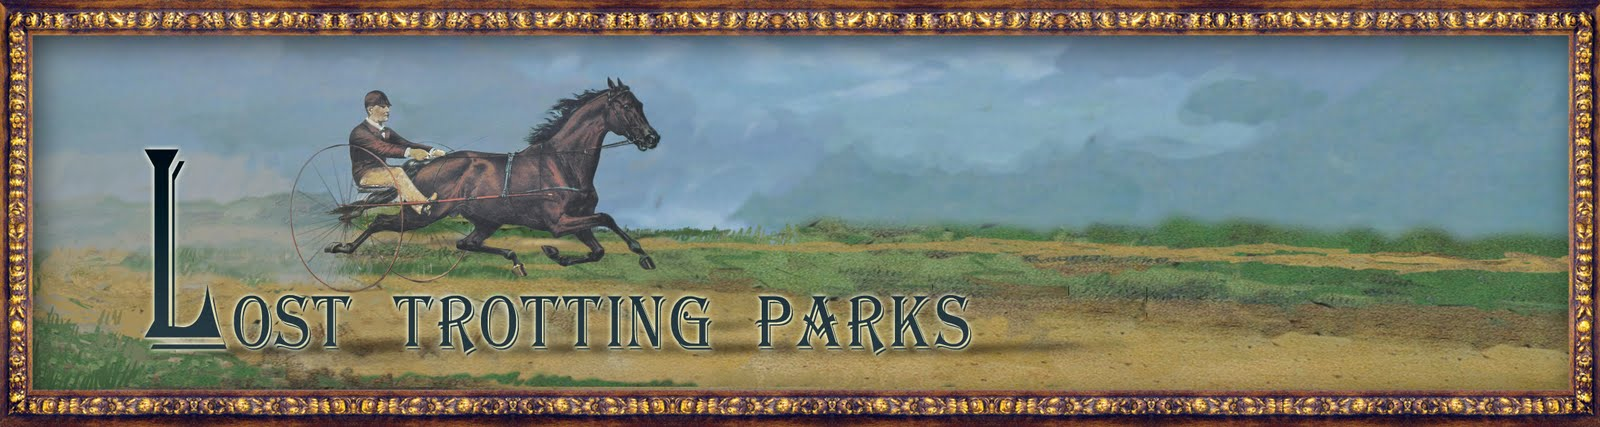 The Lost Trotting Parks Heritage Center  --  Featuring Nelson 4209